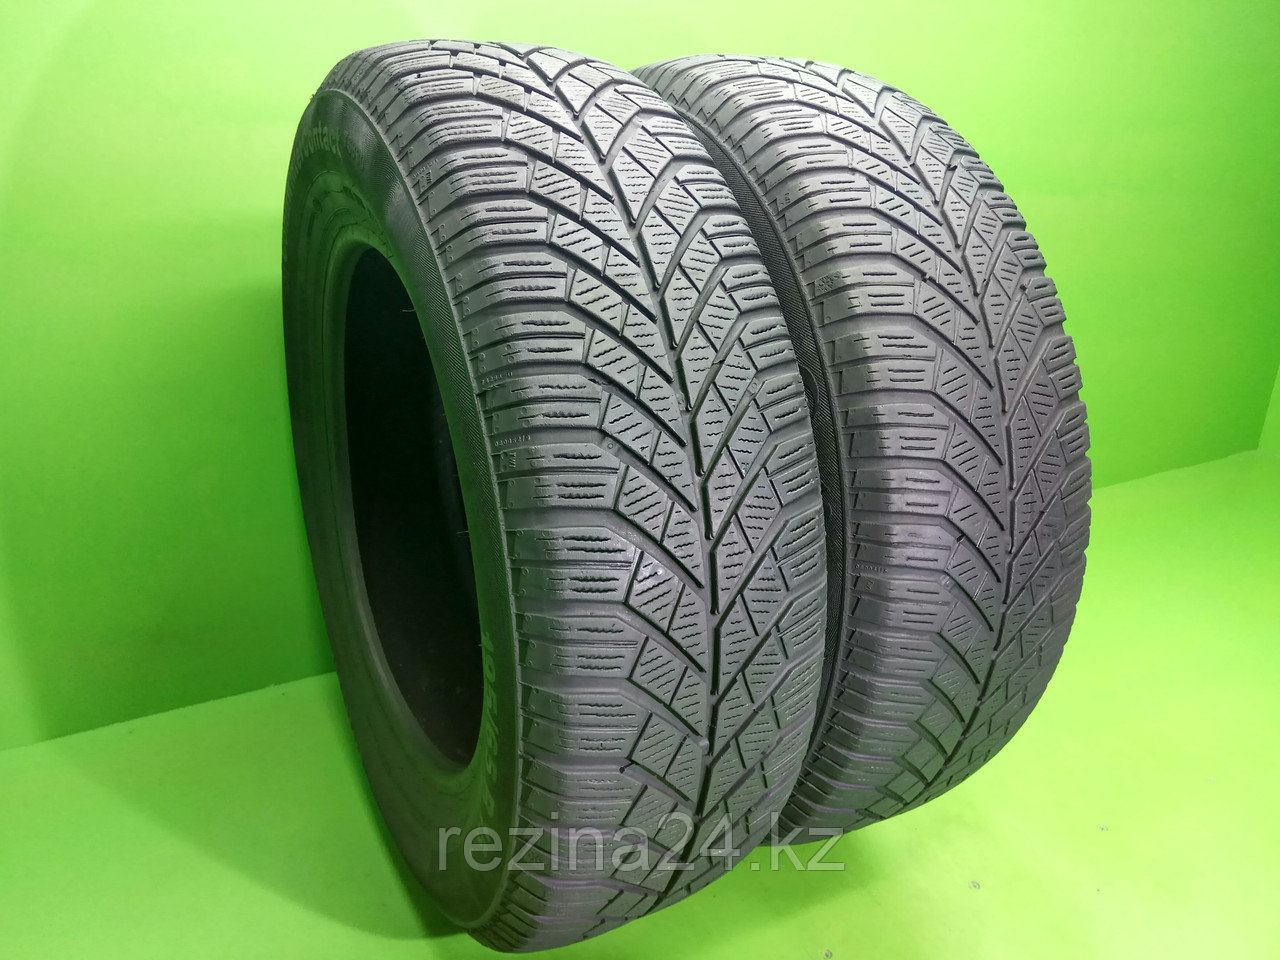 195/65 R 15 (91H) CONTINENTAL Conti Winter Contact Ts 830 всесезонные б/у шины